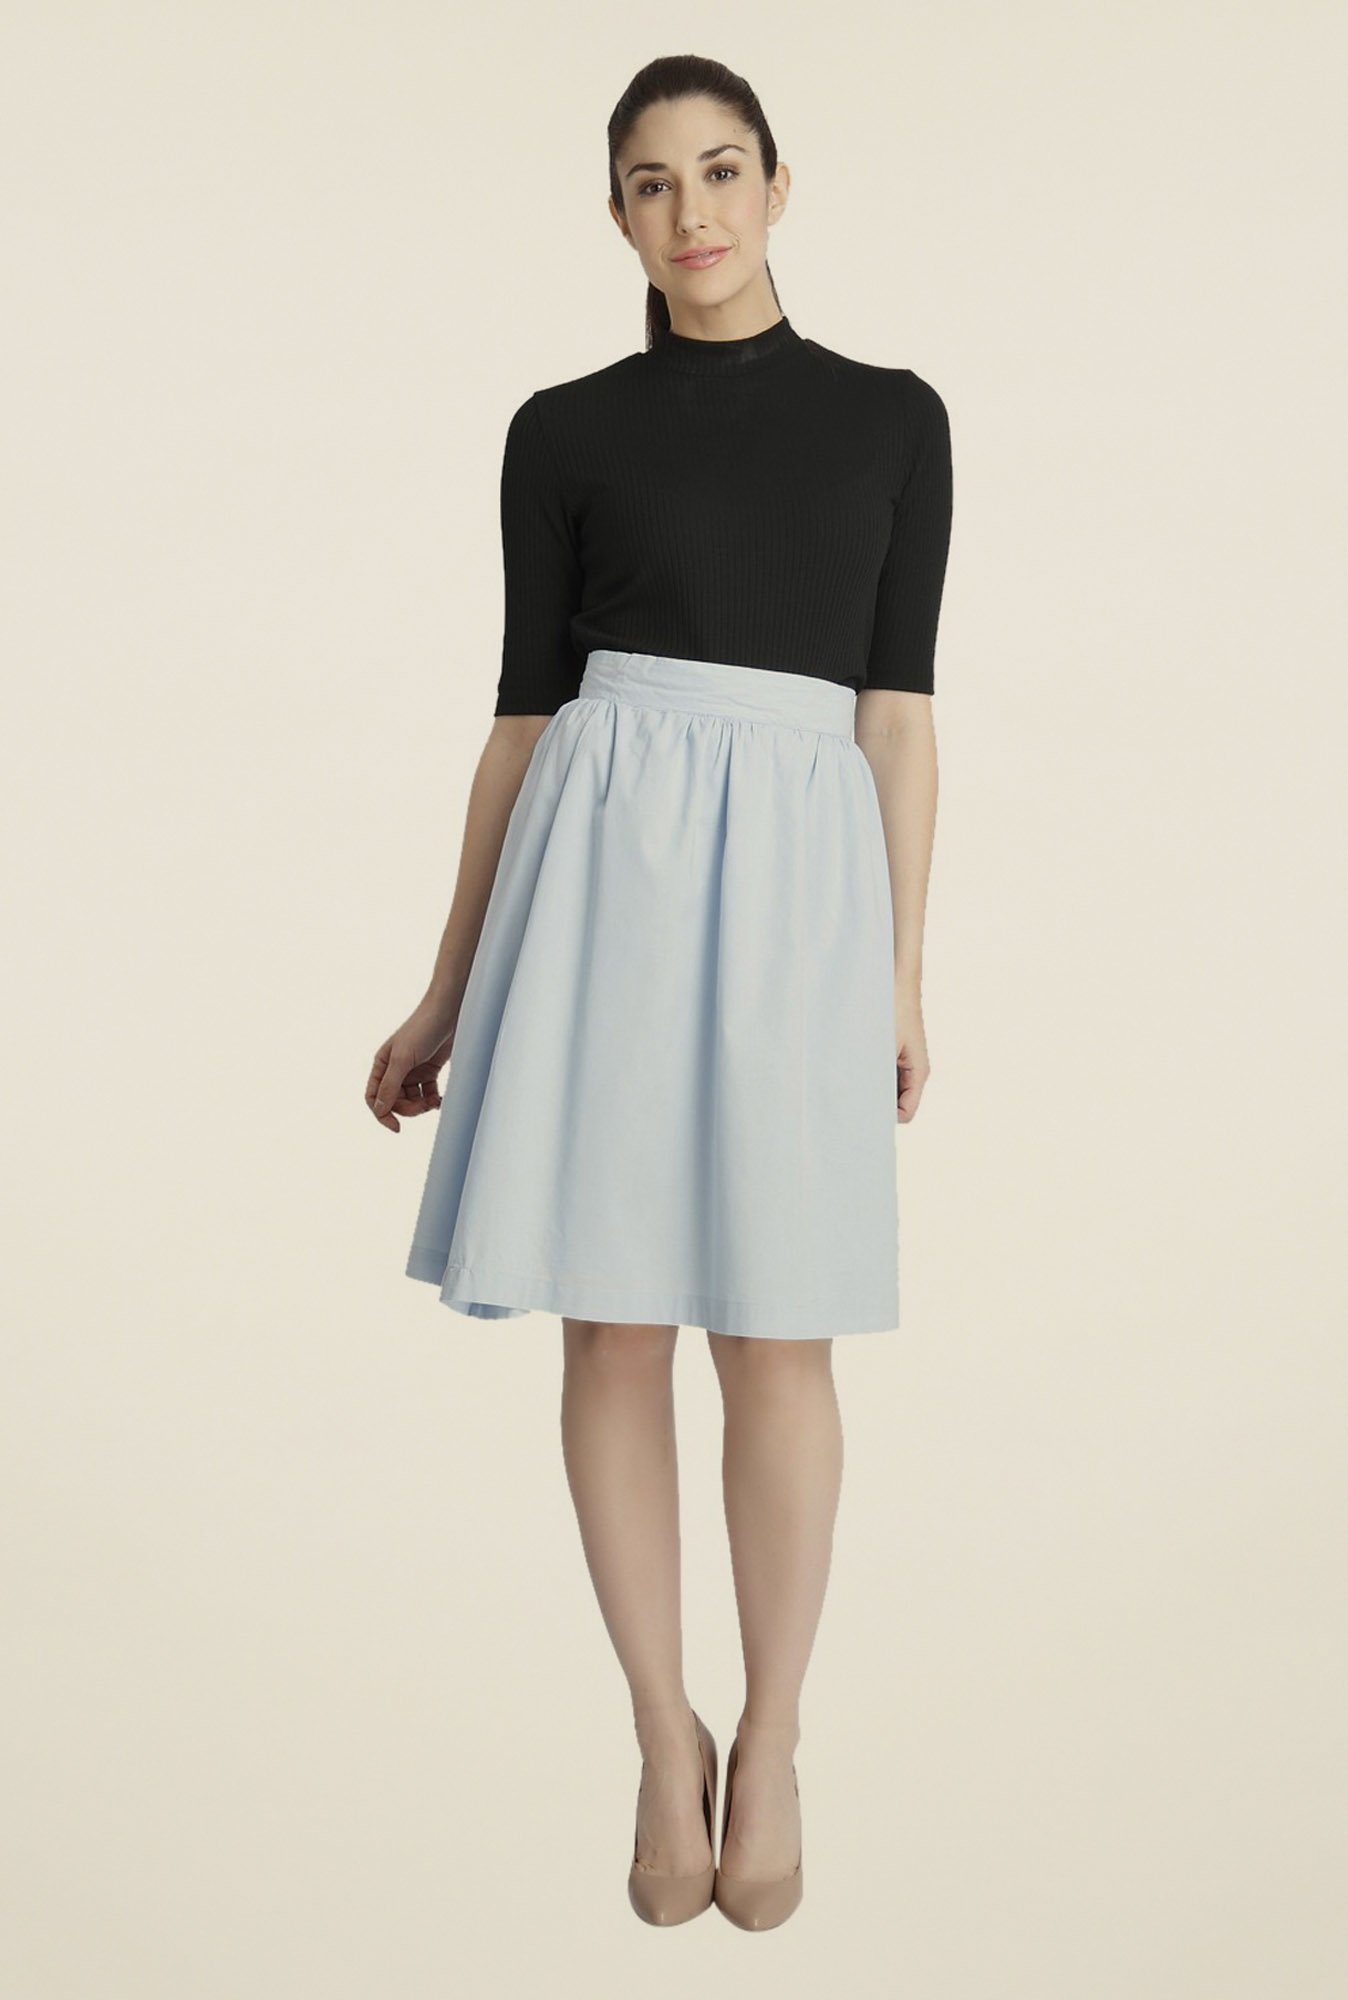 Vero Moda Light Blue Solid Skirt